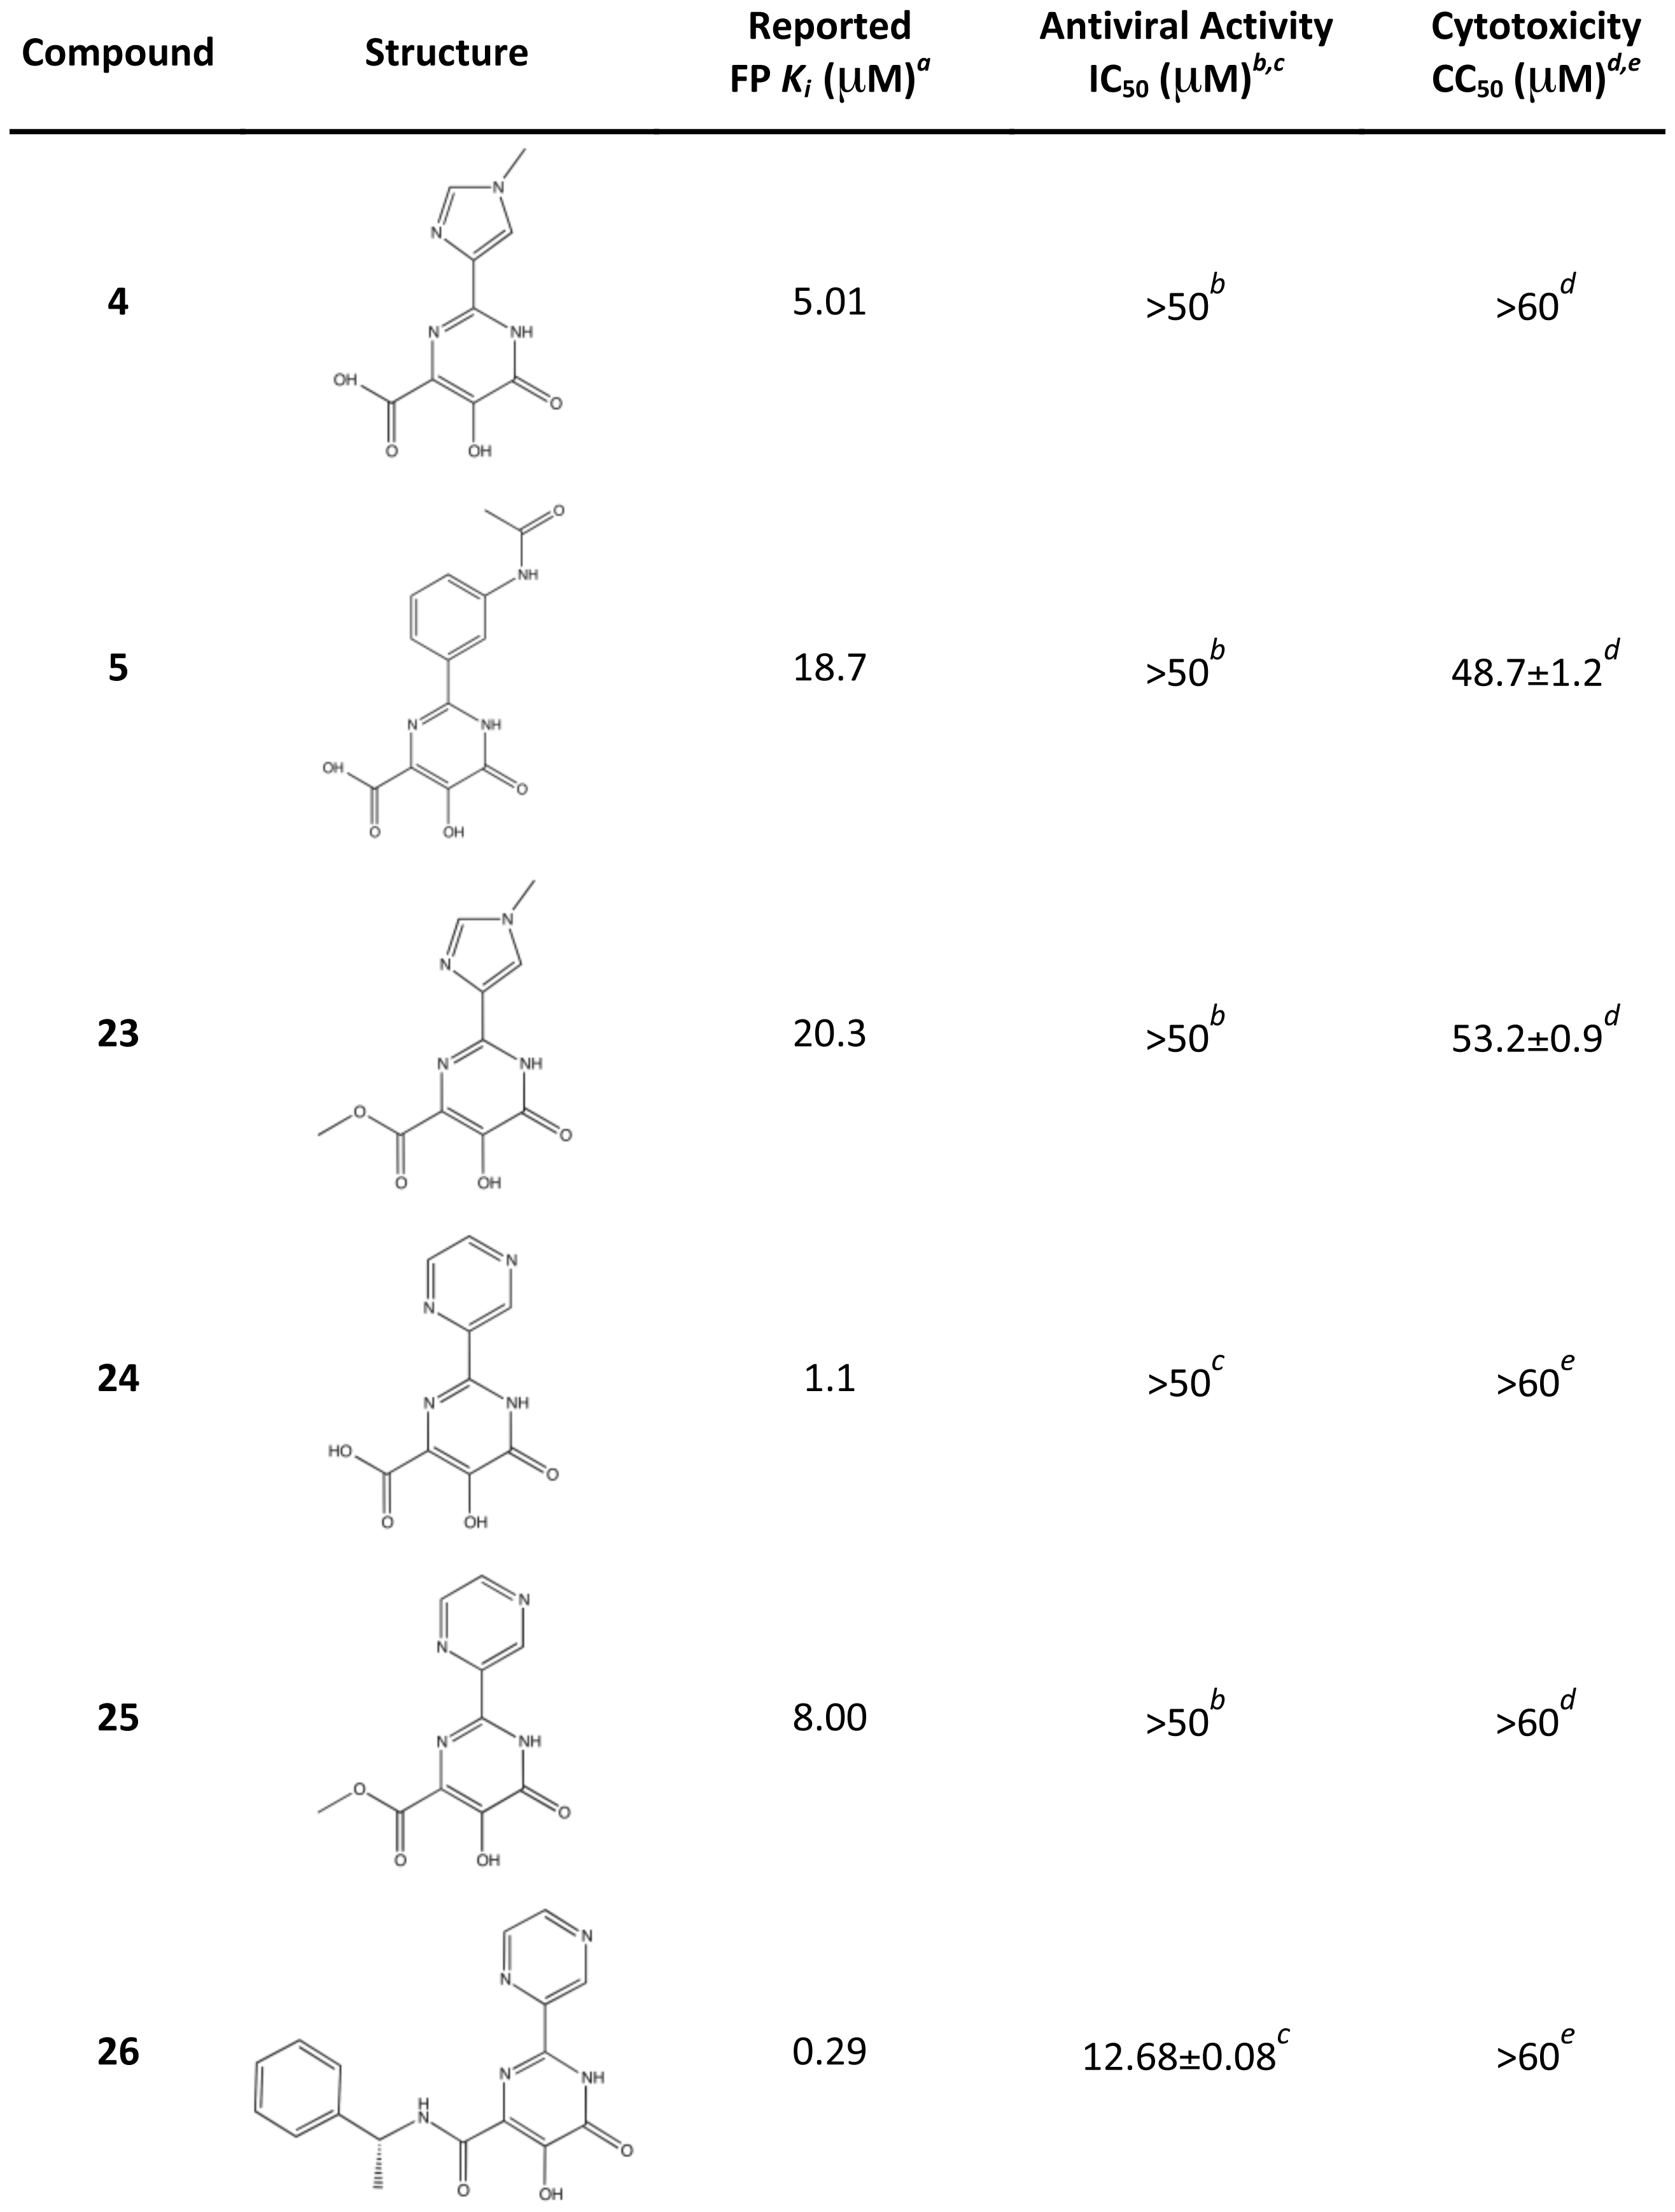 Reported PA<sub>N</sub> binding activities, antiviral activities, and cytotoxicities of compounds 4 and 5 and related compounds.